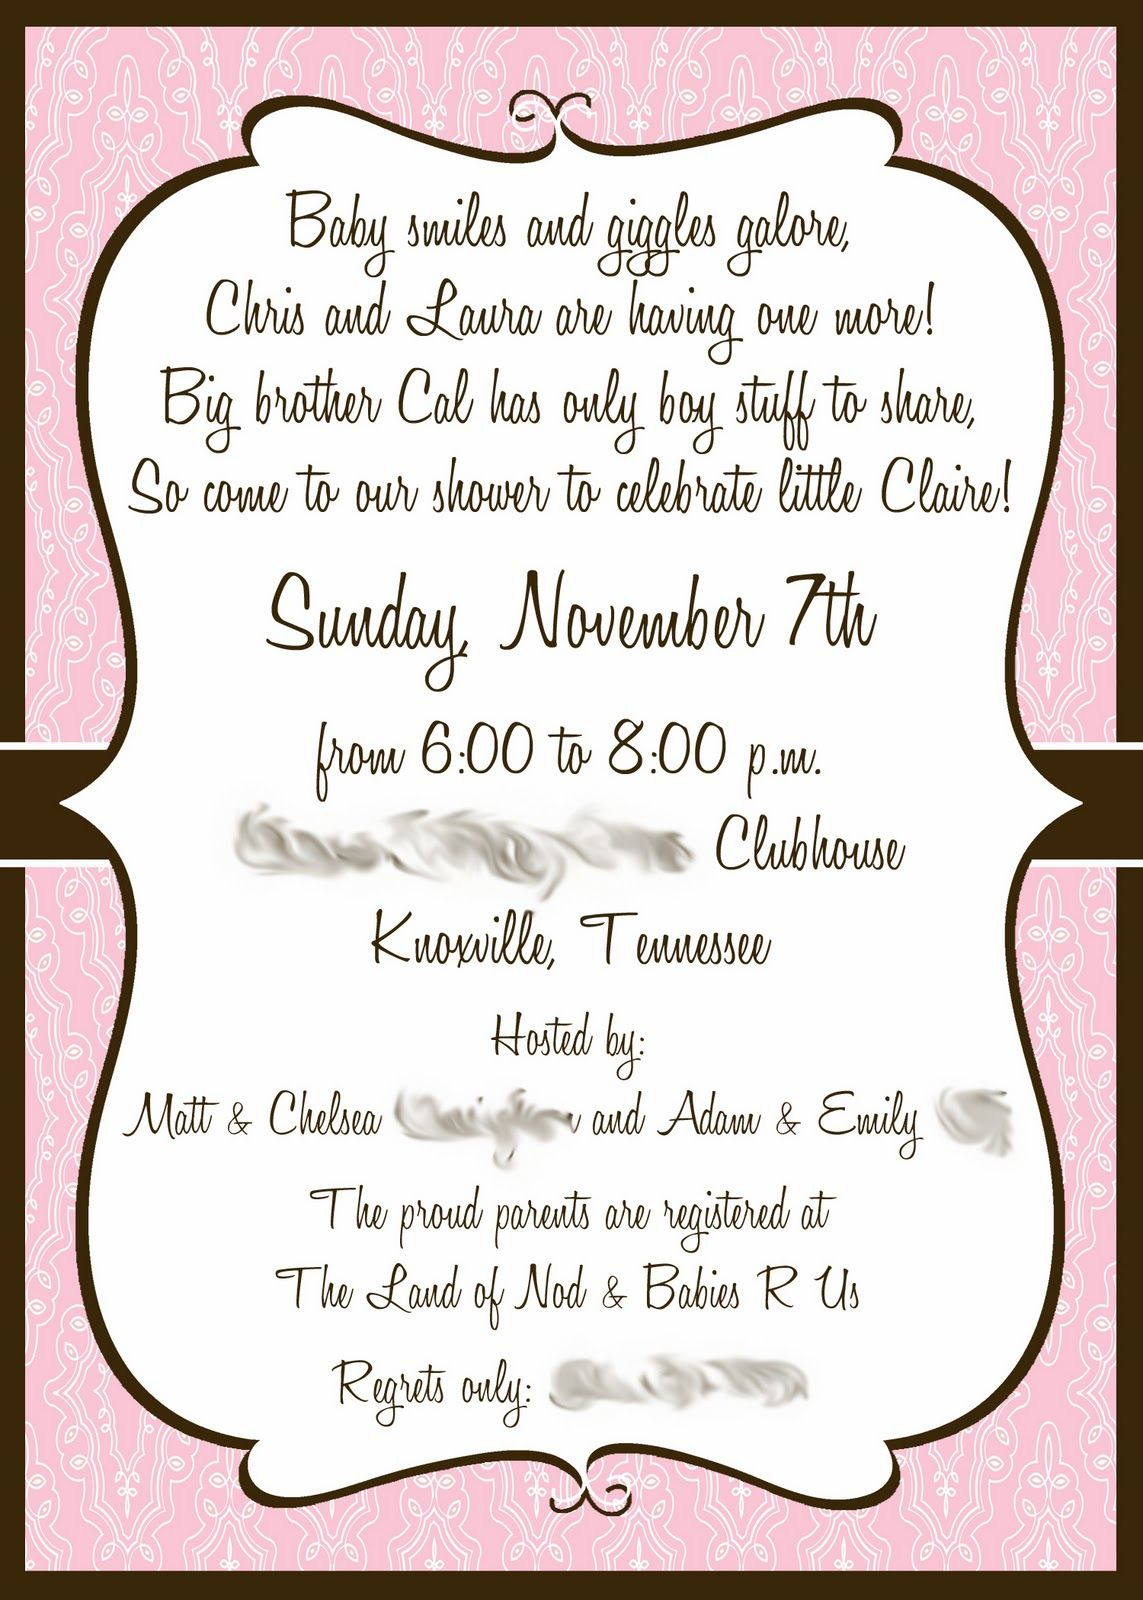 Full Size of Baby Shower:delightful Baby Shower Invitation Wording Picture Designs Google Image Result For Http 1bpblogspotcom Enfk1pe42ga Google Image Result For Http 1bpblogspotcom Enfk1pe42ga Tlif7wezpci Aaaaaaaaazm Bwdwv1glrac S1600 Baby2bshower2binvitation2bfor2bwebjpg